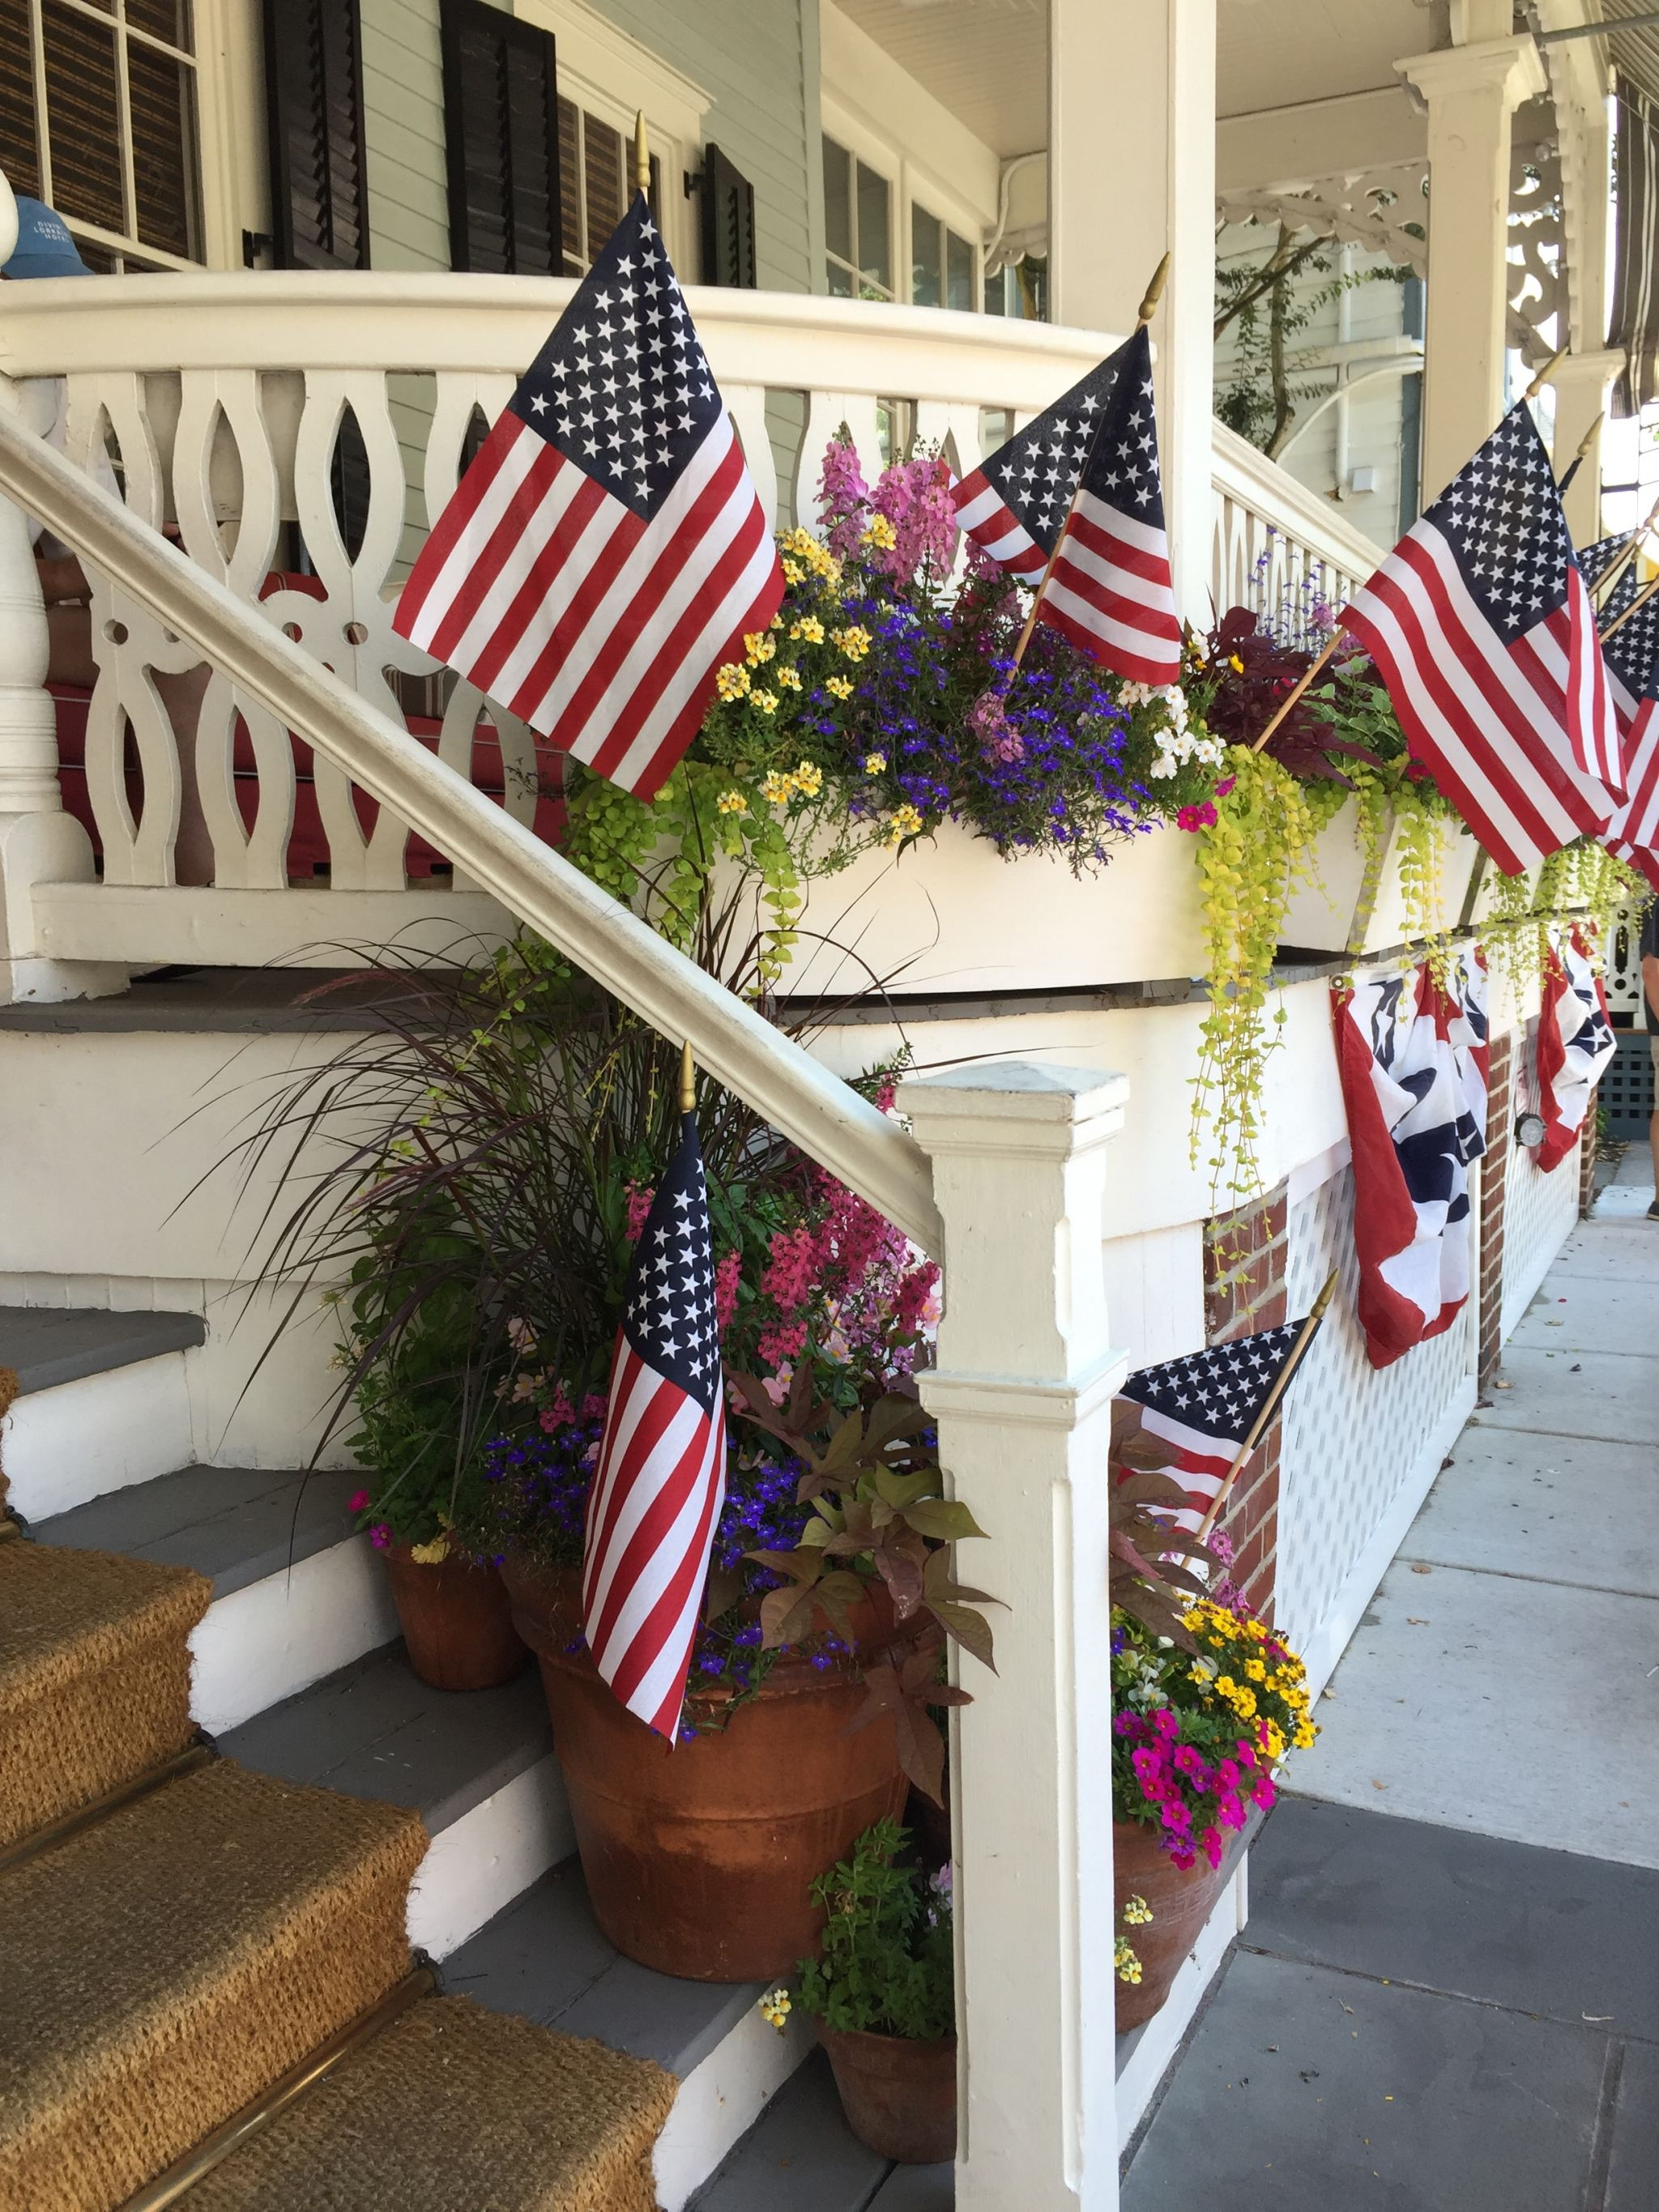 Flags all around for Independence Day in Cape May, NJ.